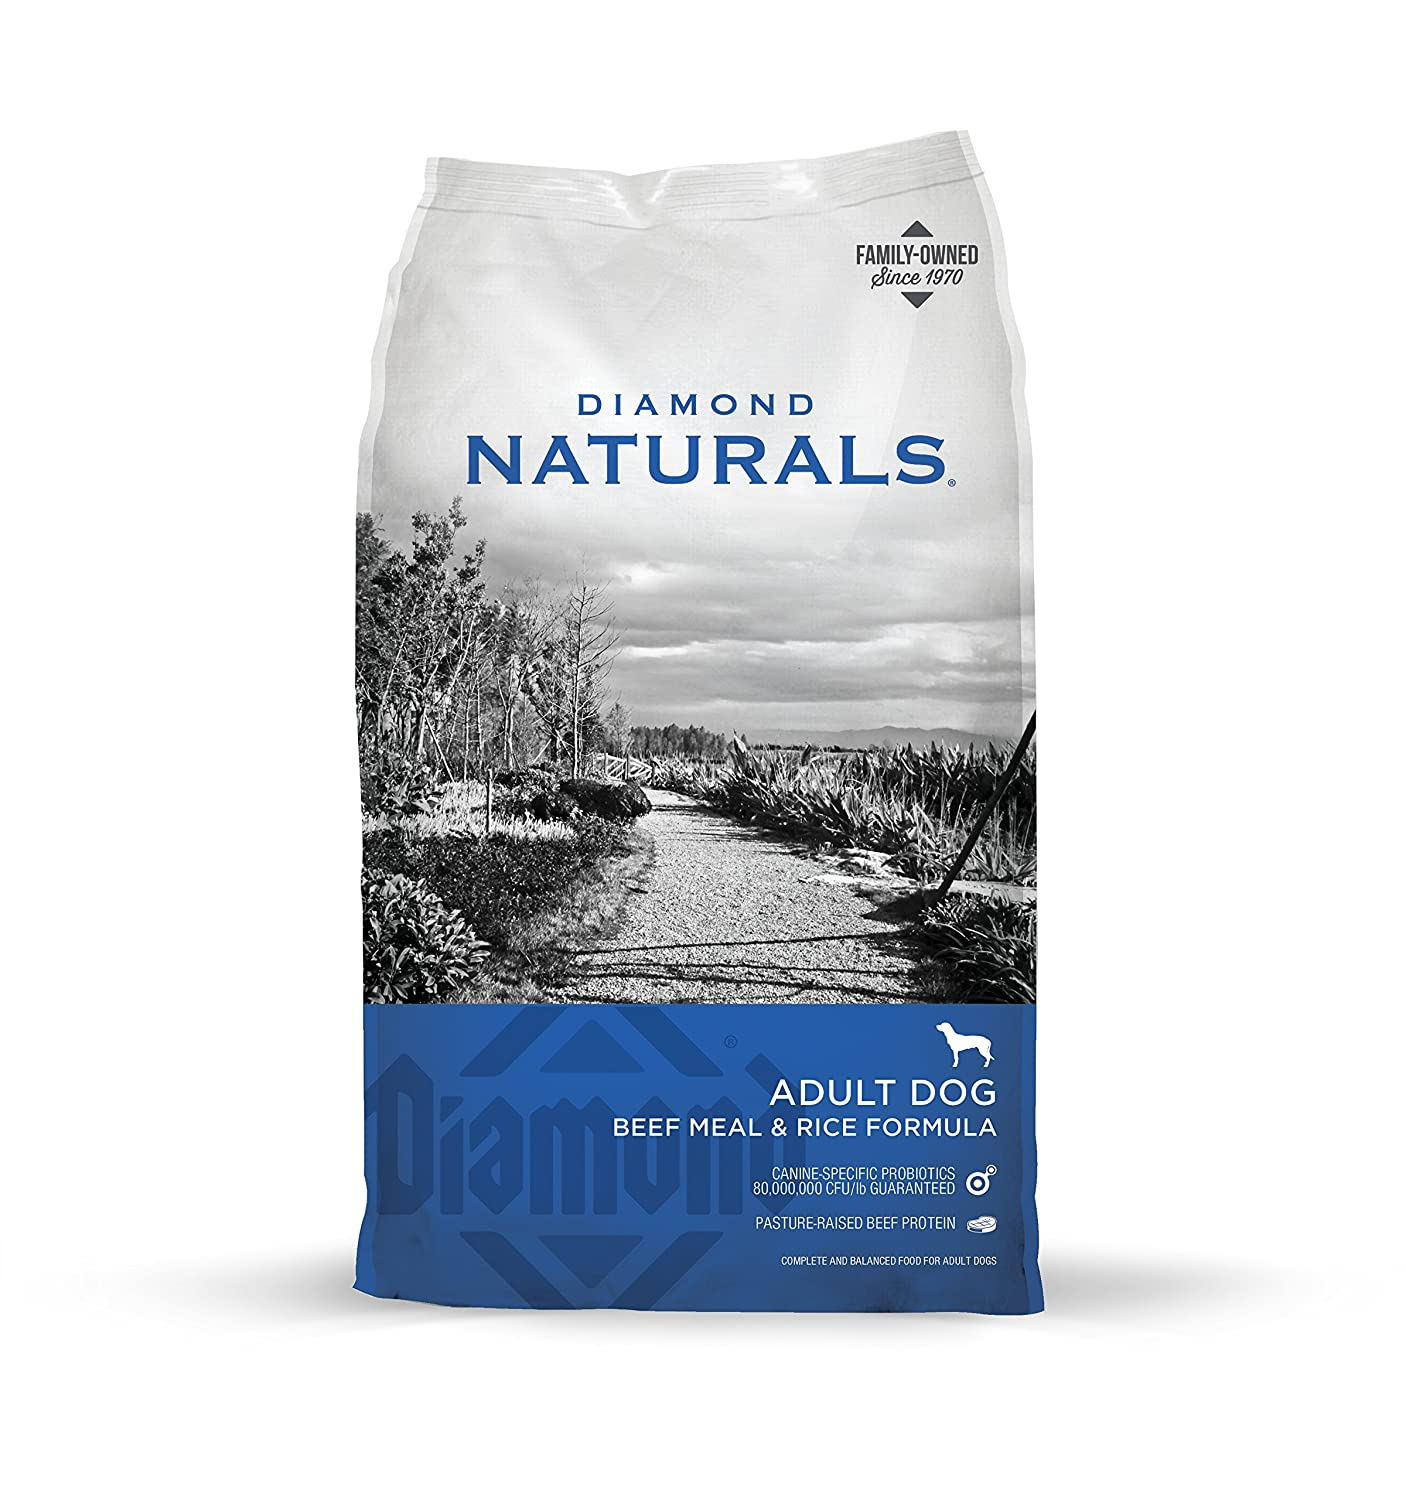 Diamond Naturals Dry Food for Adult Dog, Beef and Rice Formula